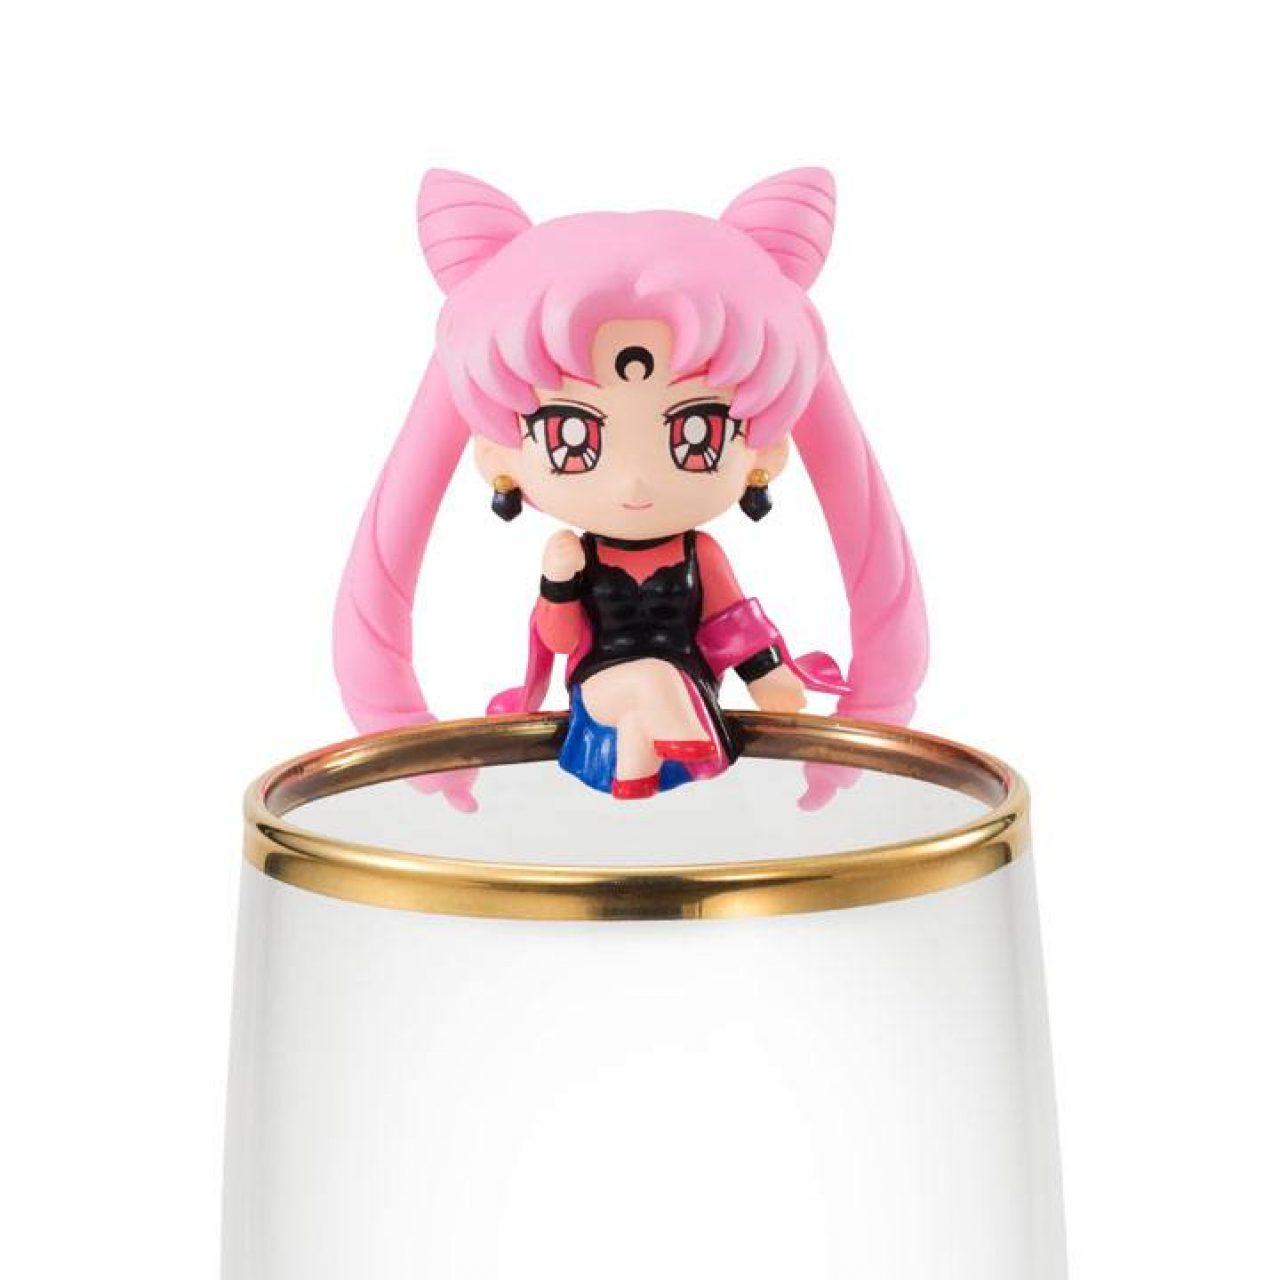 Sailor Moon Ochatomo Series Trading Figure 5 cm Night & Day Assortment (8)